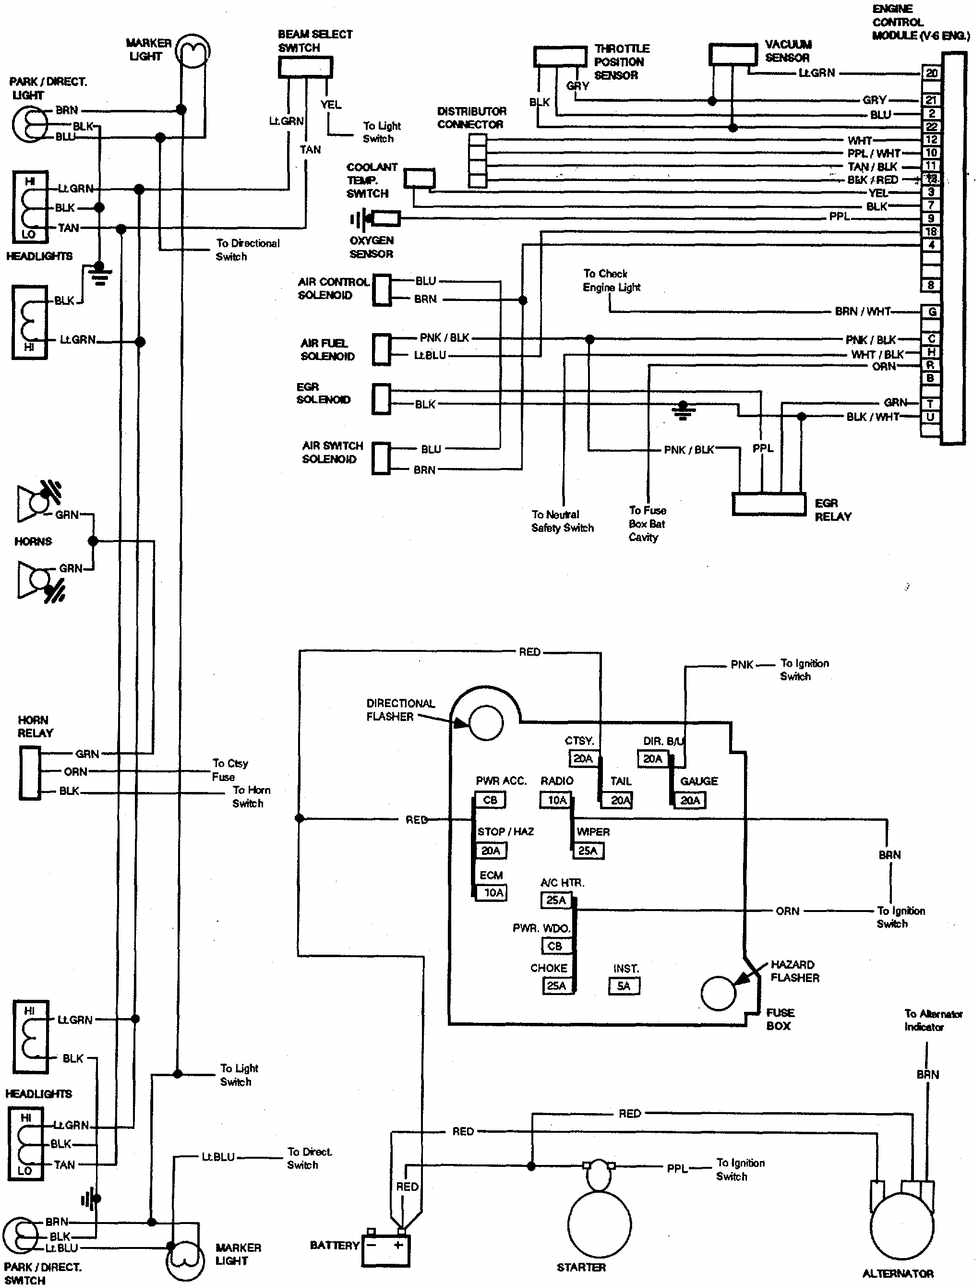 Chevrolet V8 Trucks 1981 1987 on 1985 corvette throttle body diagram